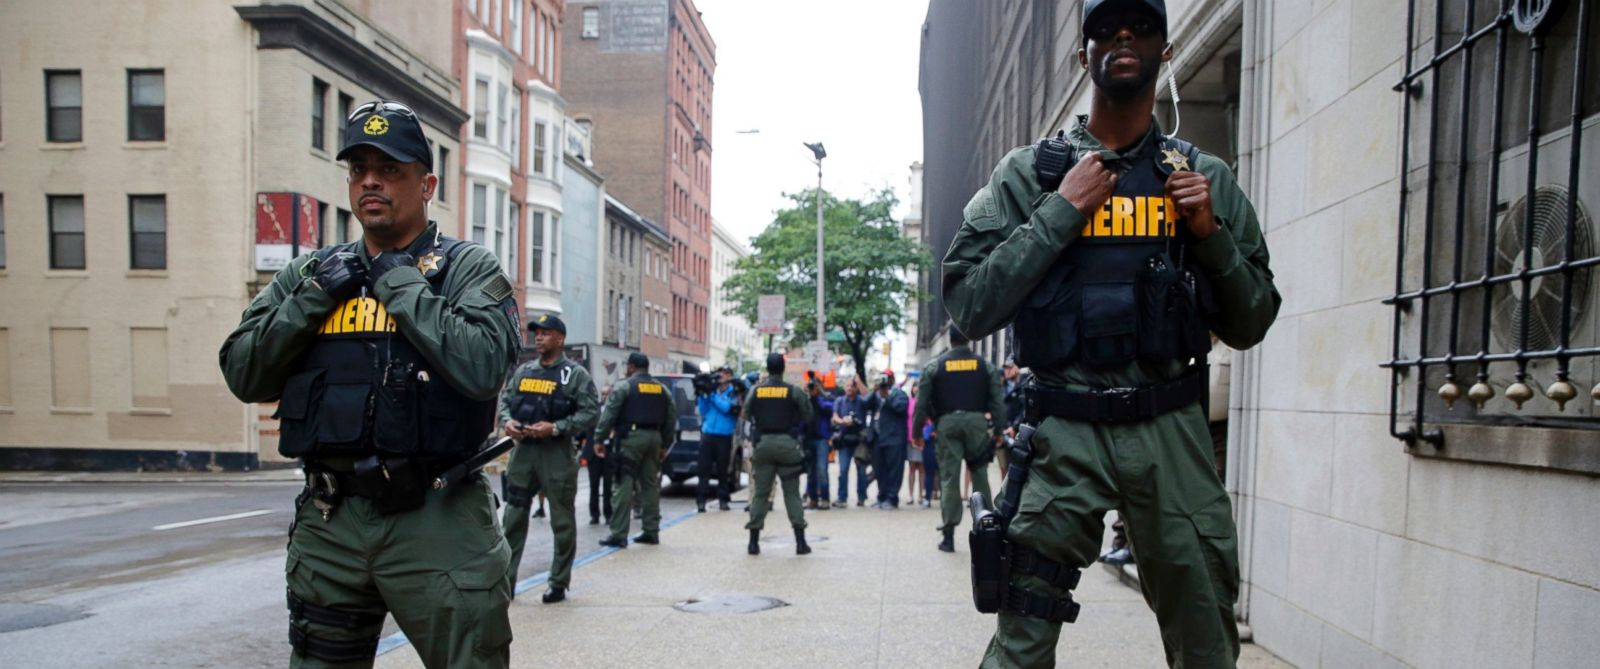 the controversial manslaughter case of freddie gray Freddie gray's death 'not an accident,' medical examiner says  second-degree  assault, two counts of manslaughter by vehicle and misconduct in office  faces  the most serious charges in a controversial case that sparked.